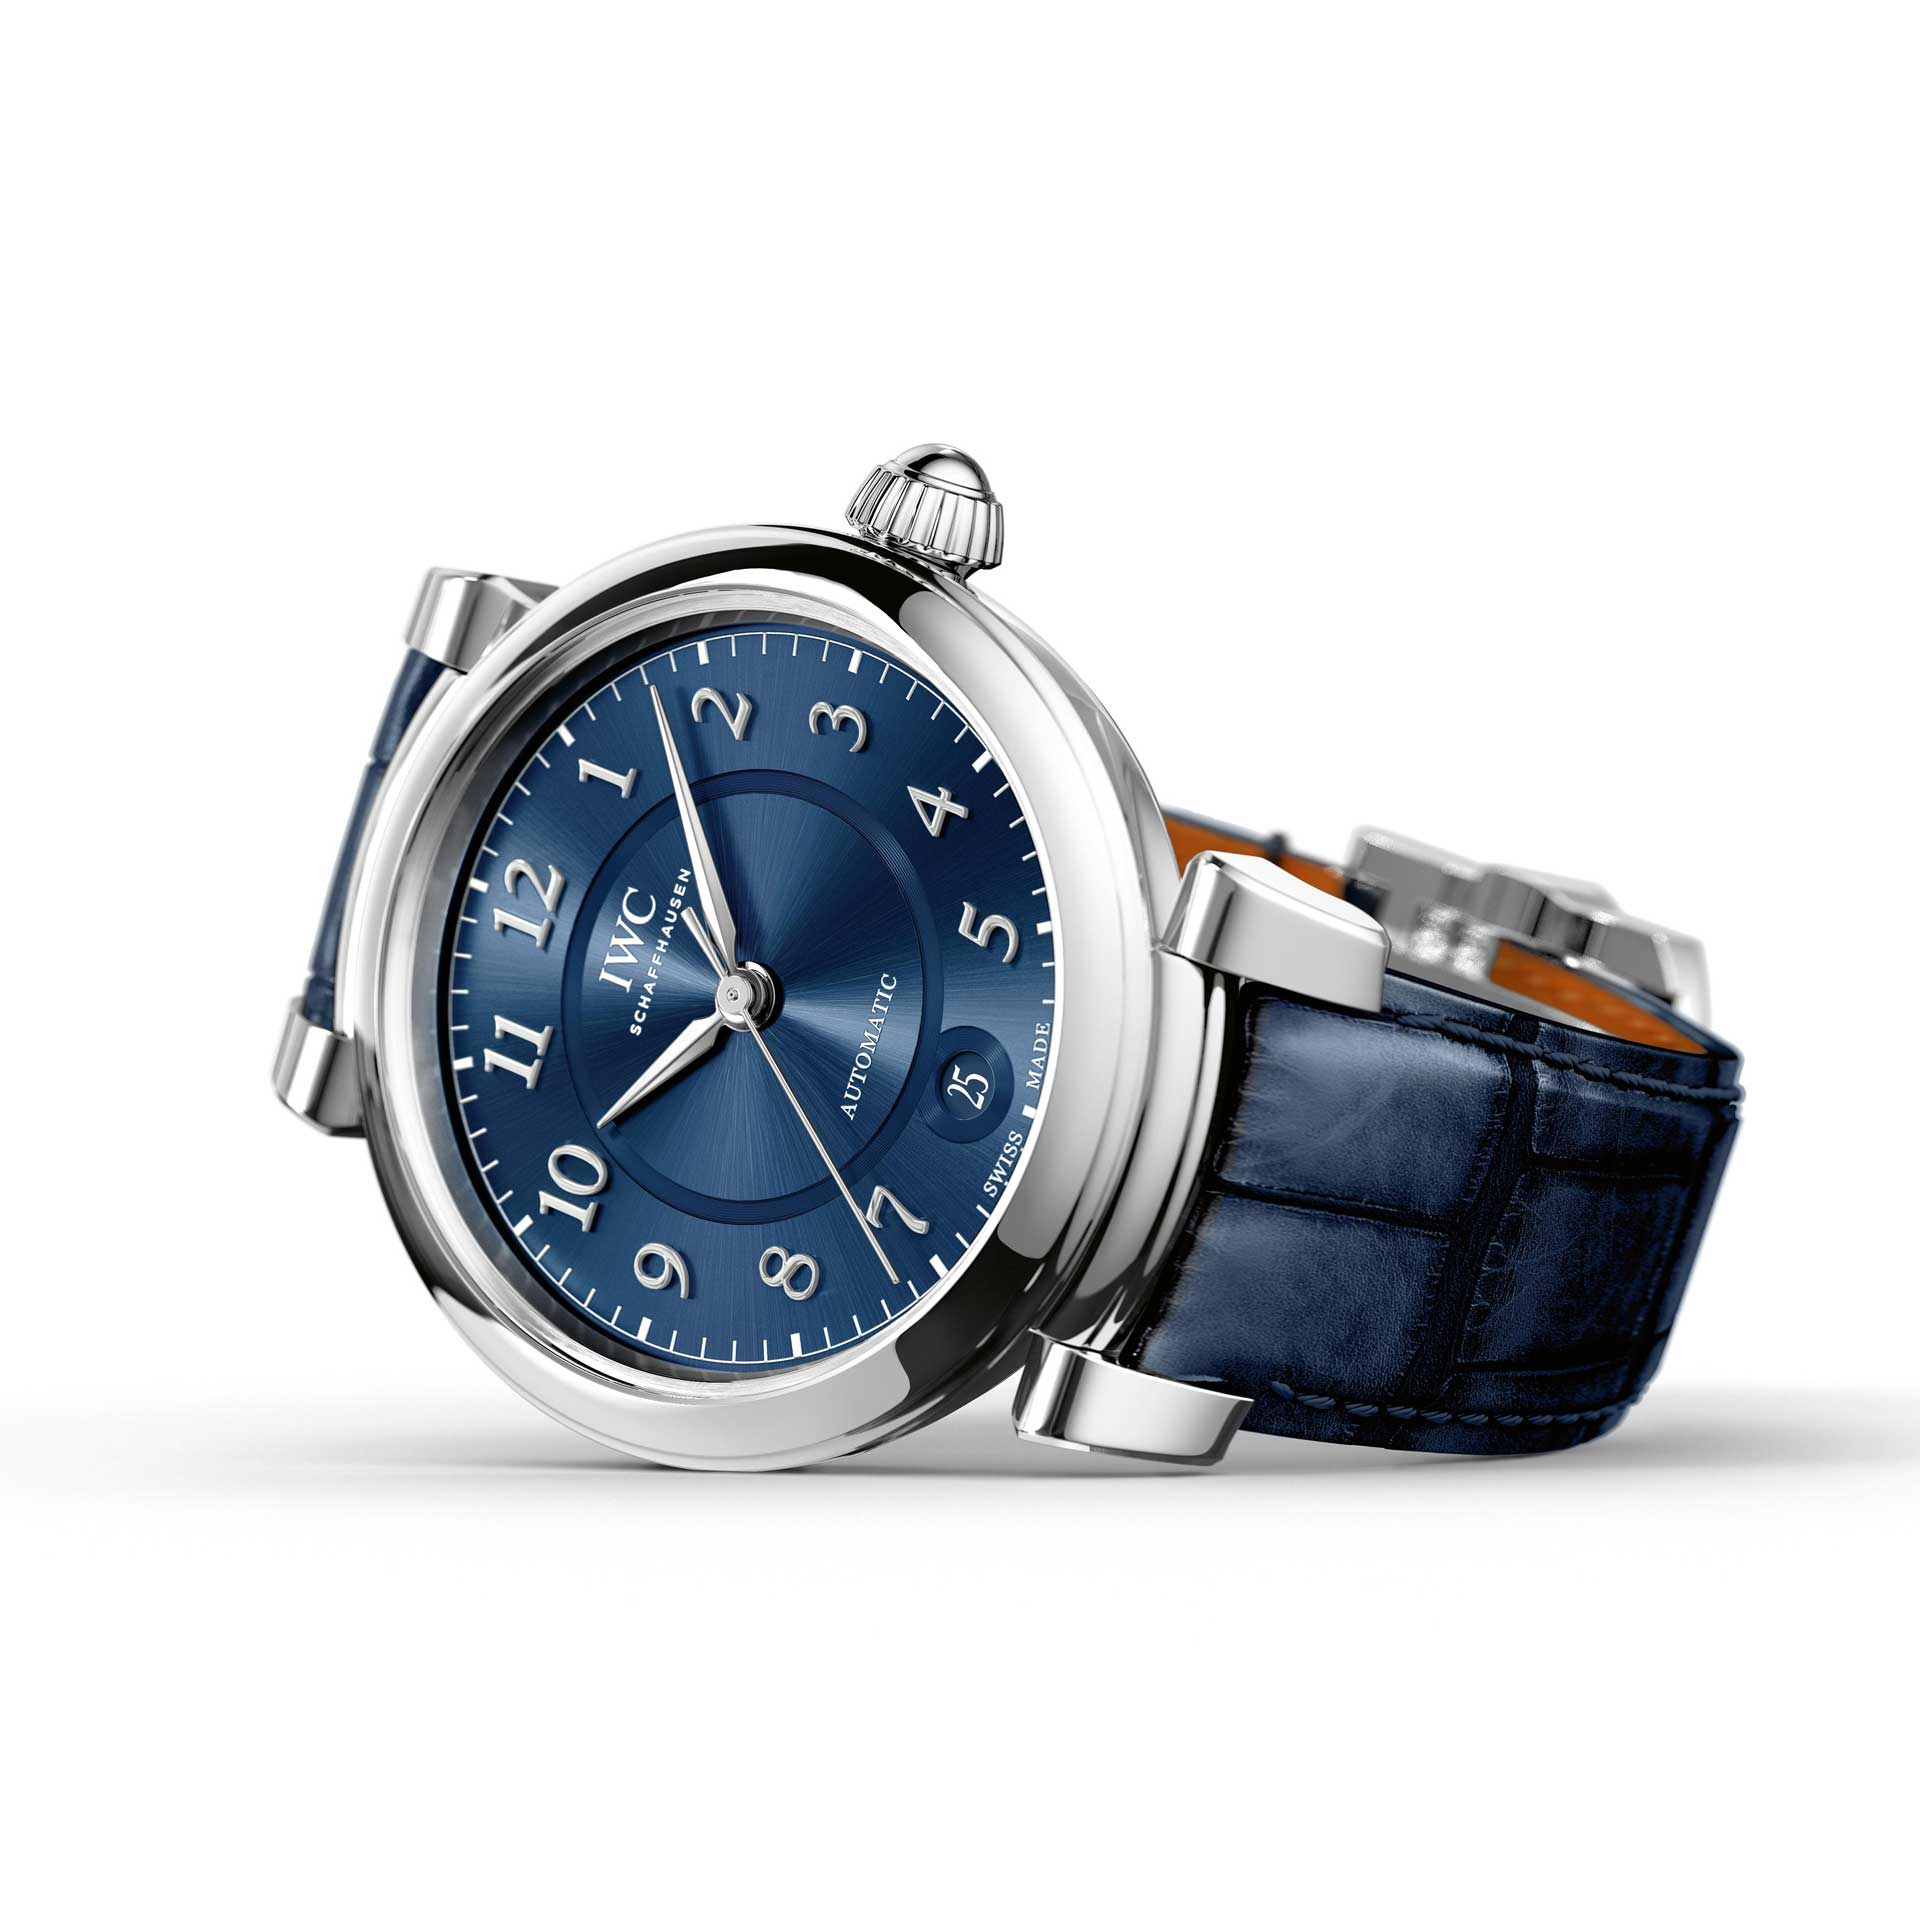 iwc mens watches